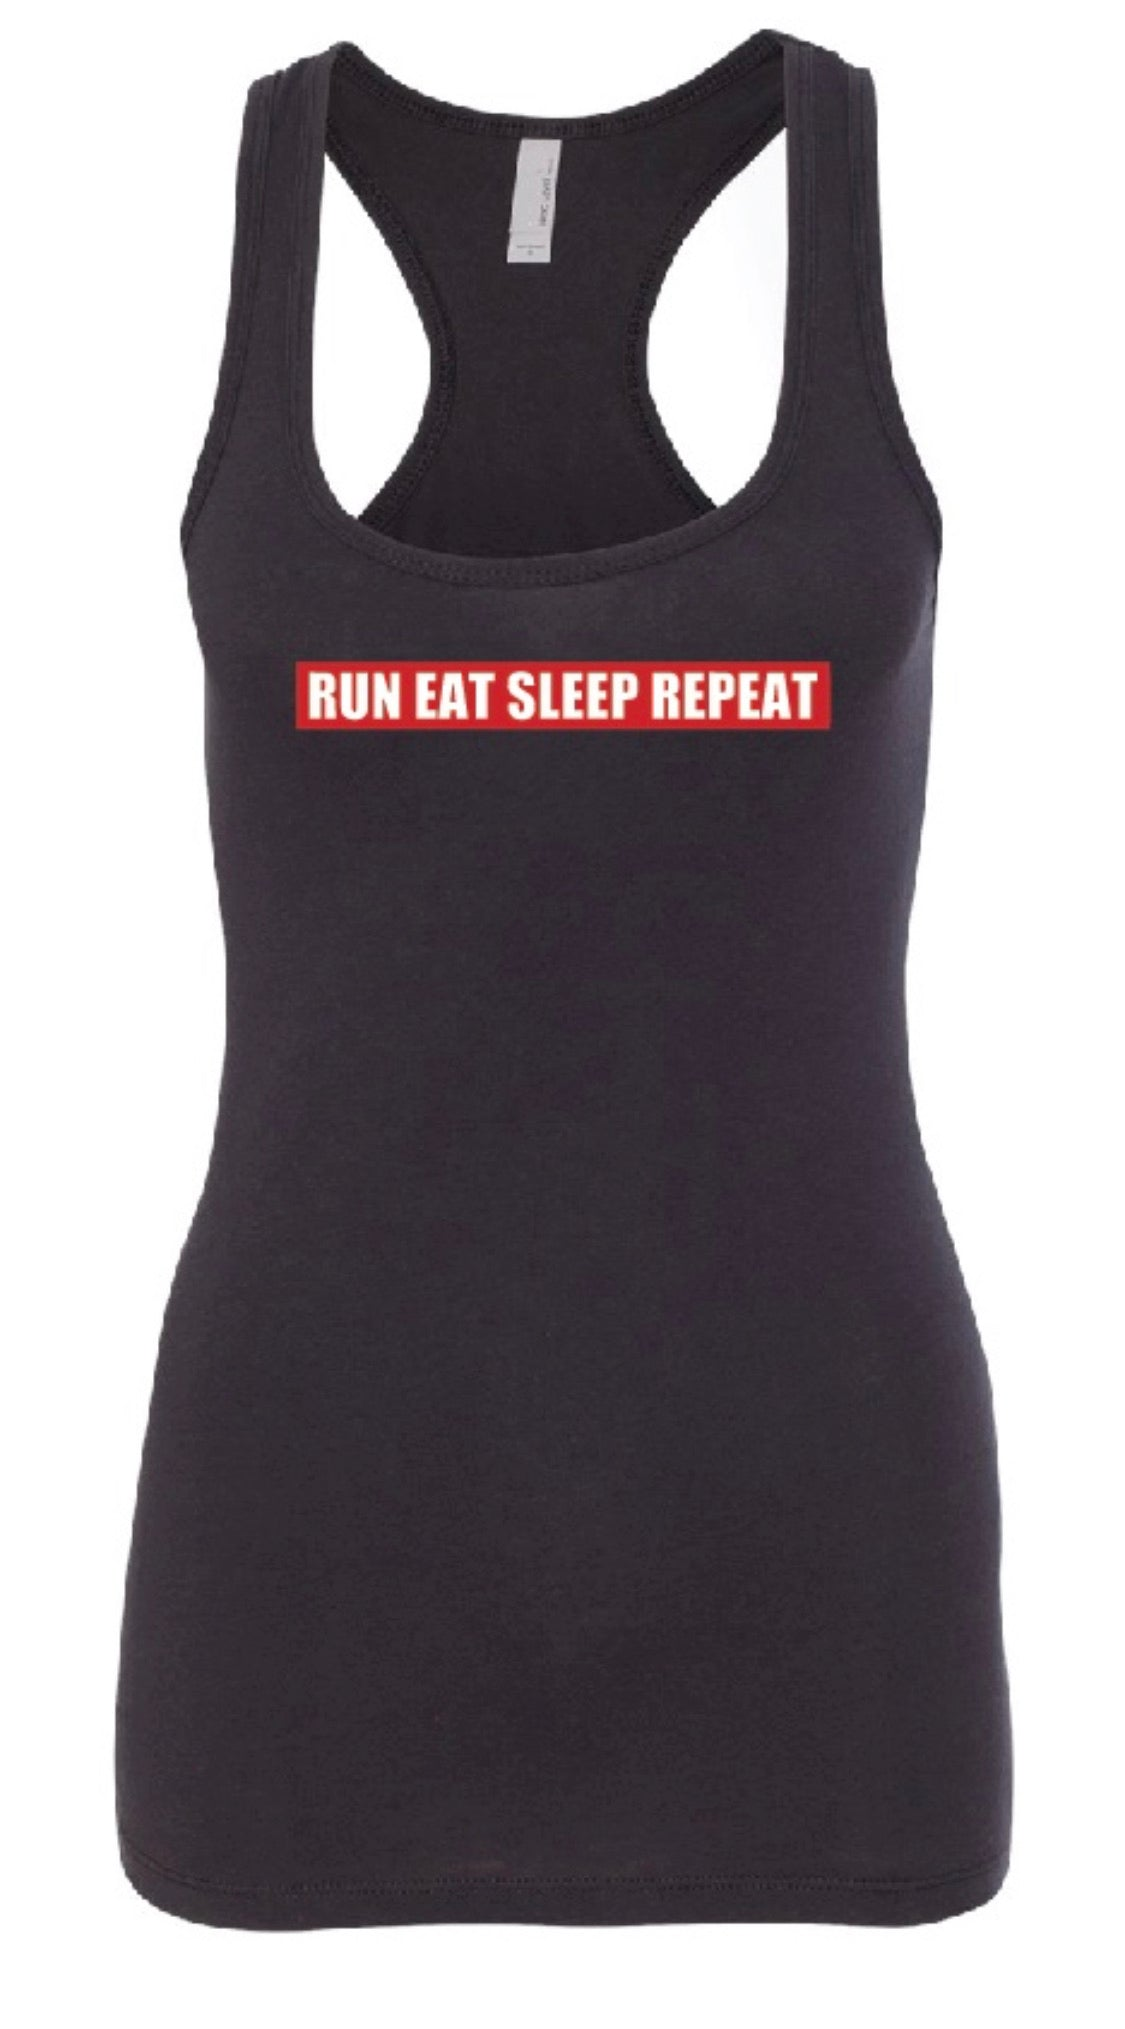 """ A Runner's Life"" Tank - Women's Black"